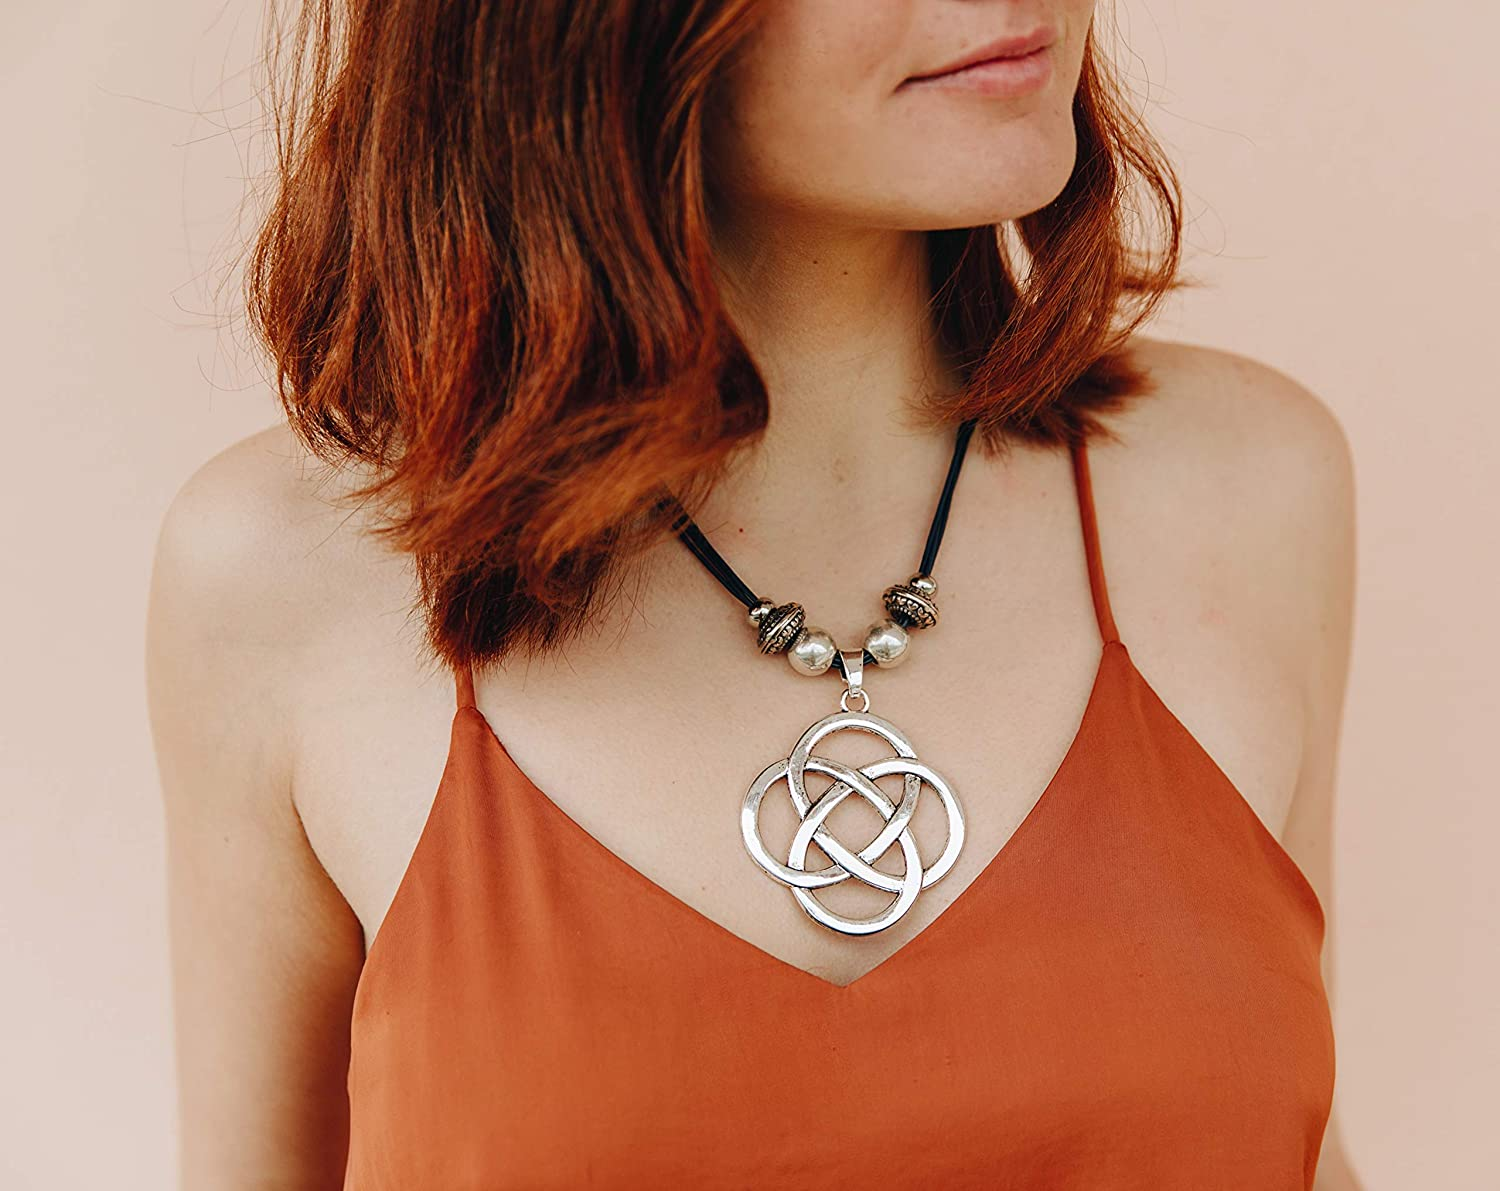 Boho Statement Bold Necklace For Women Infinity Knot Unique Genuine Leather and Silver Tone Pendant